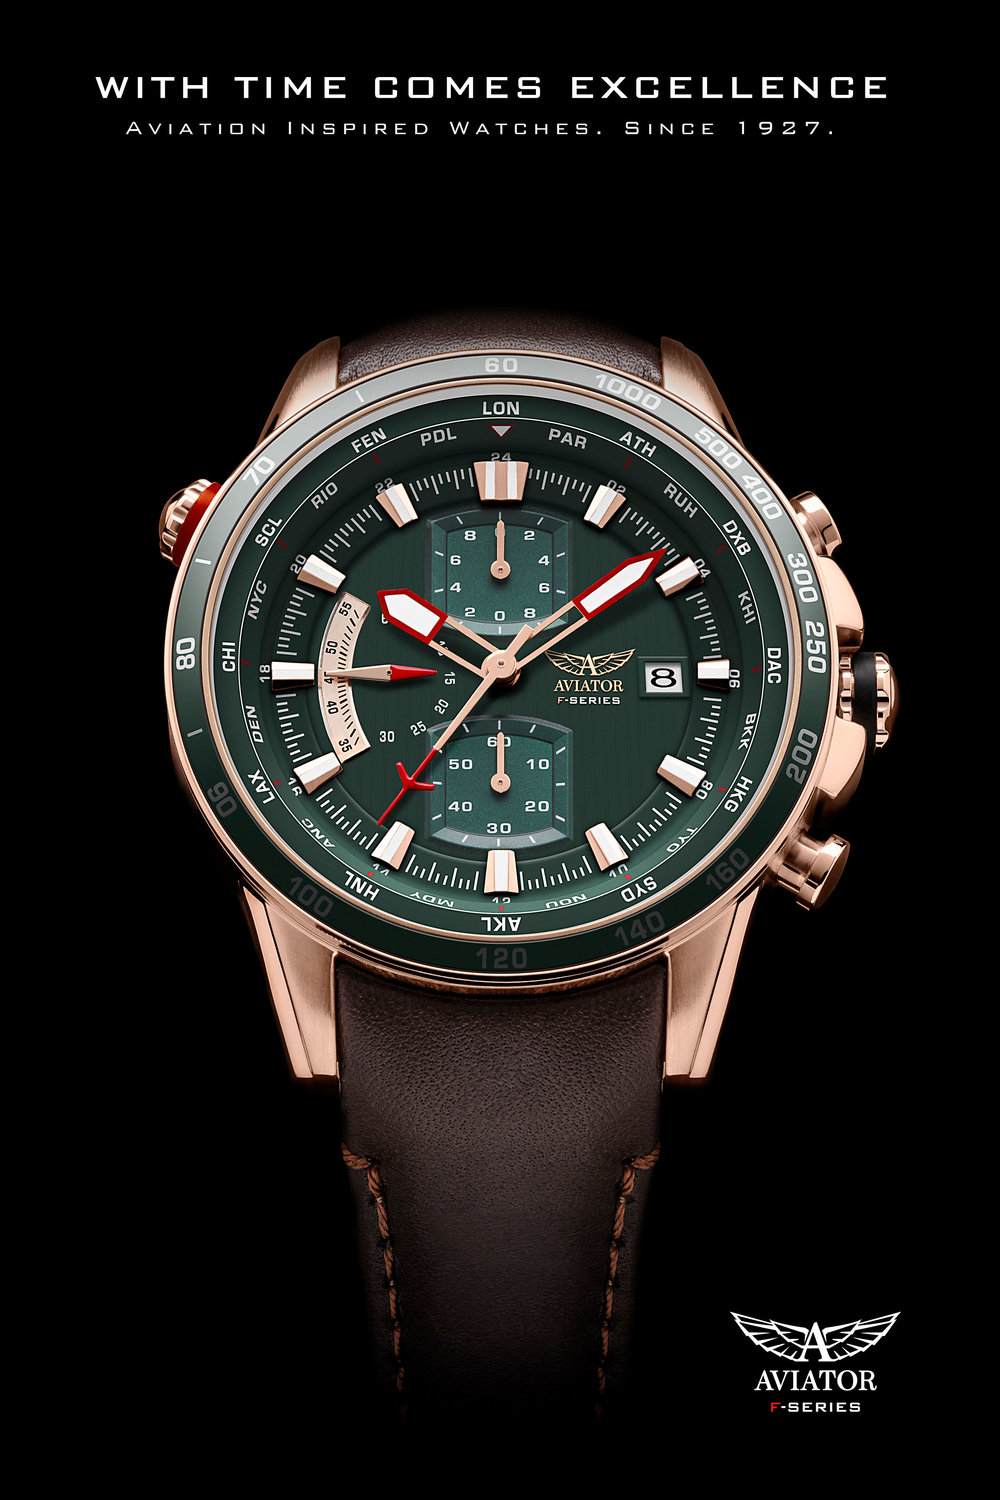 aviator-avw2020g288-watch_scorpio-worldwide_travel-retail-distributor